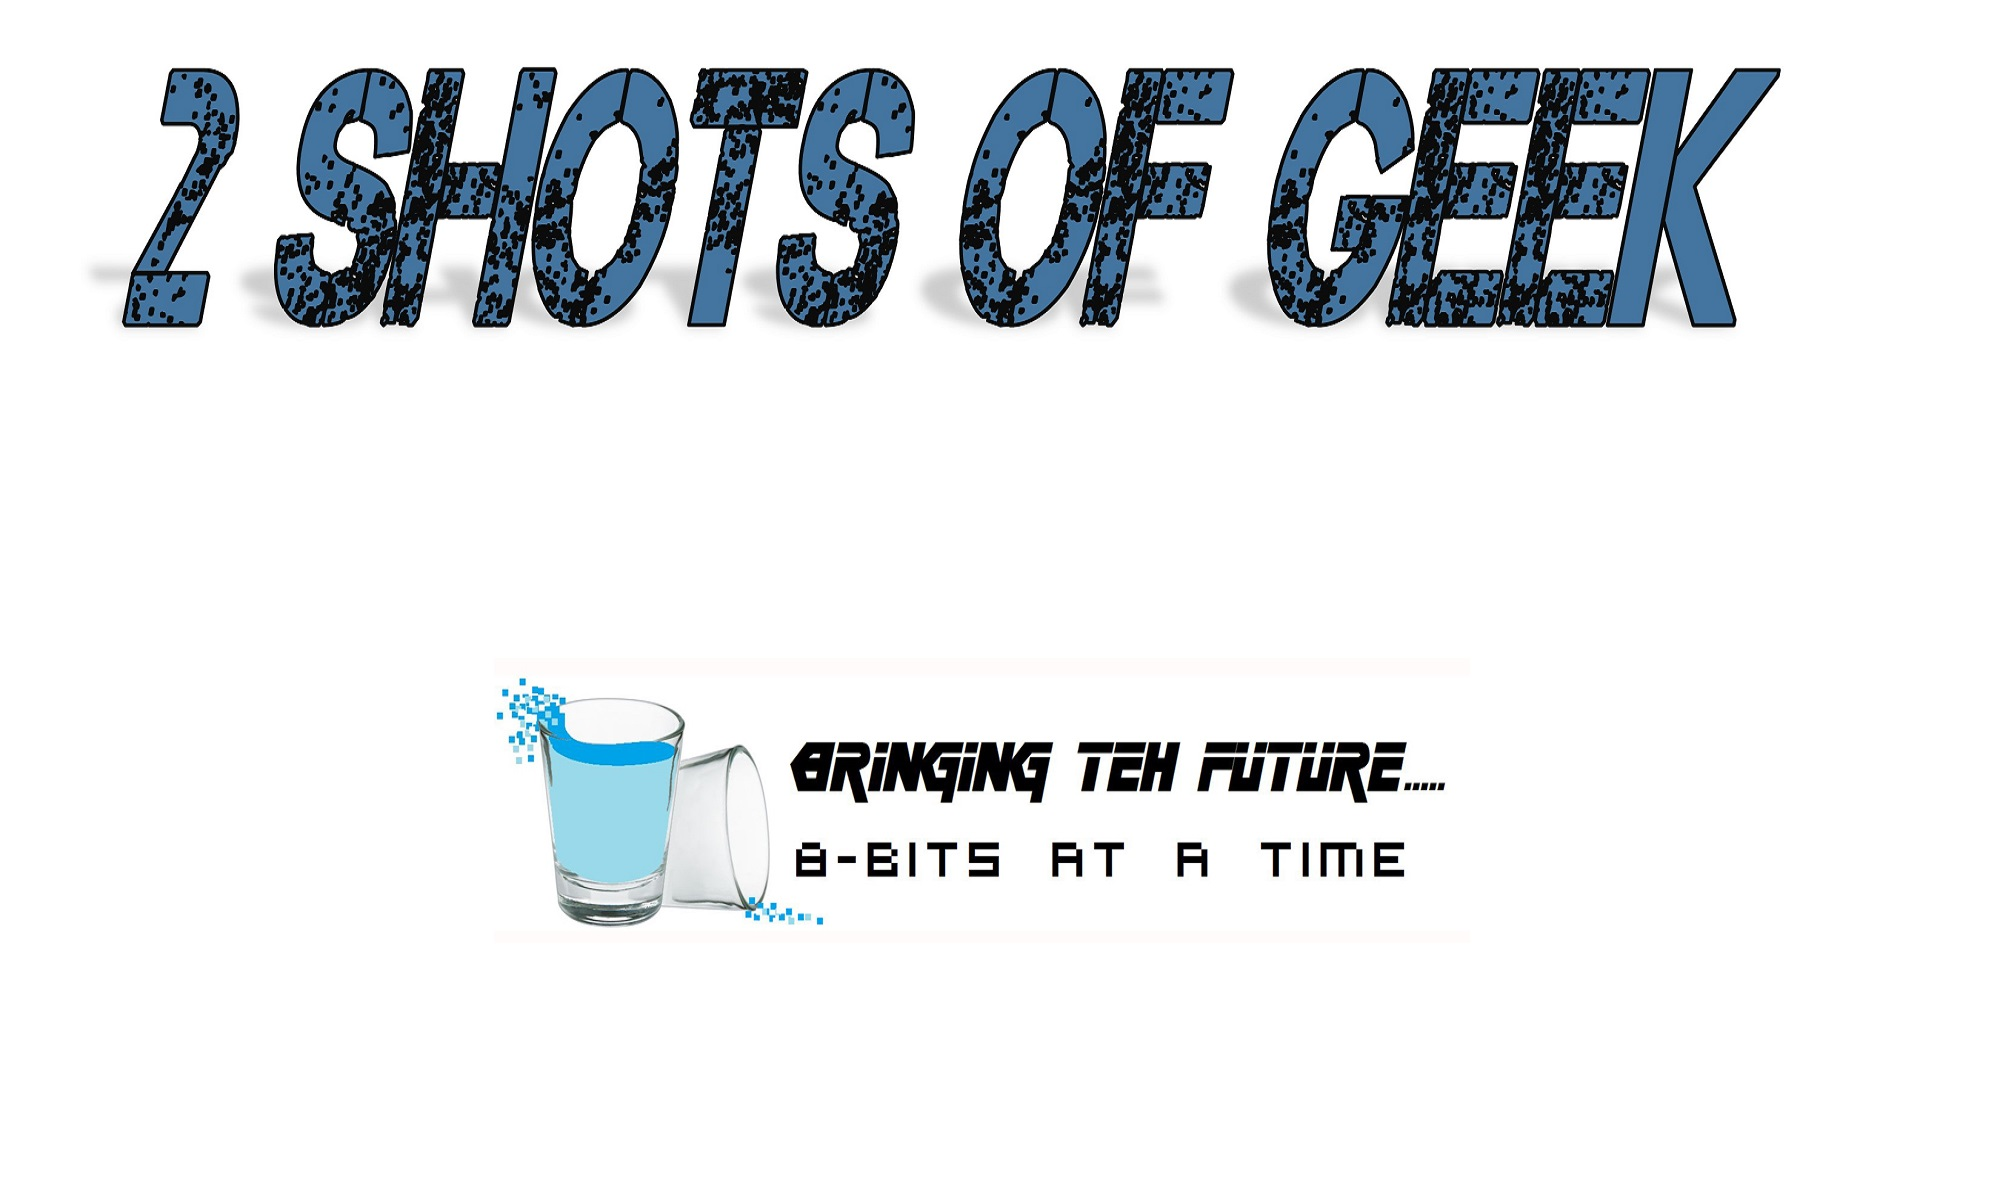 2 Shots of Geek